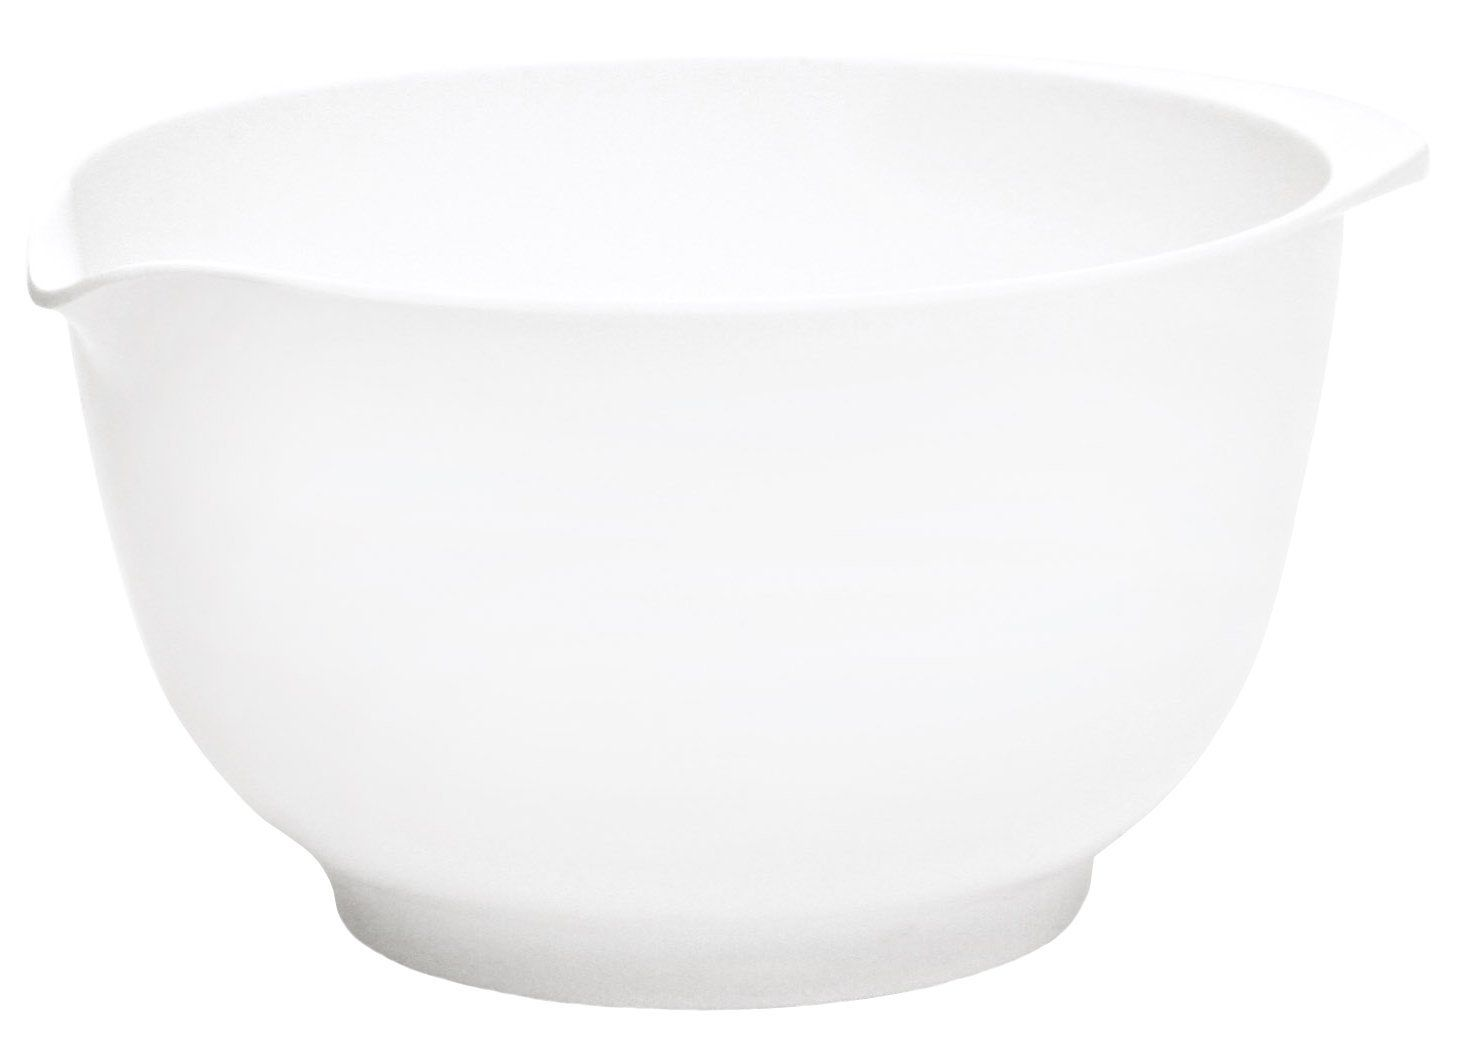 Rosti Margrethe 2 0 Litre Mixing Bowl White See This Awesome Image Baking Mixing Bowls Melamine Mixing Bowls Baking Accessories Bowl